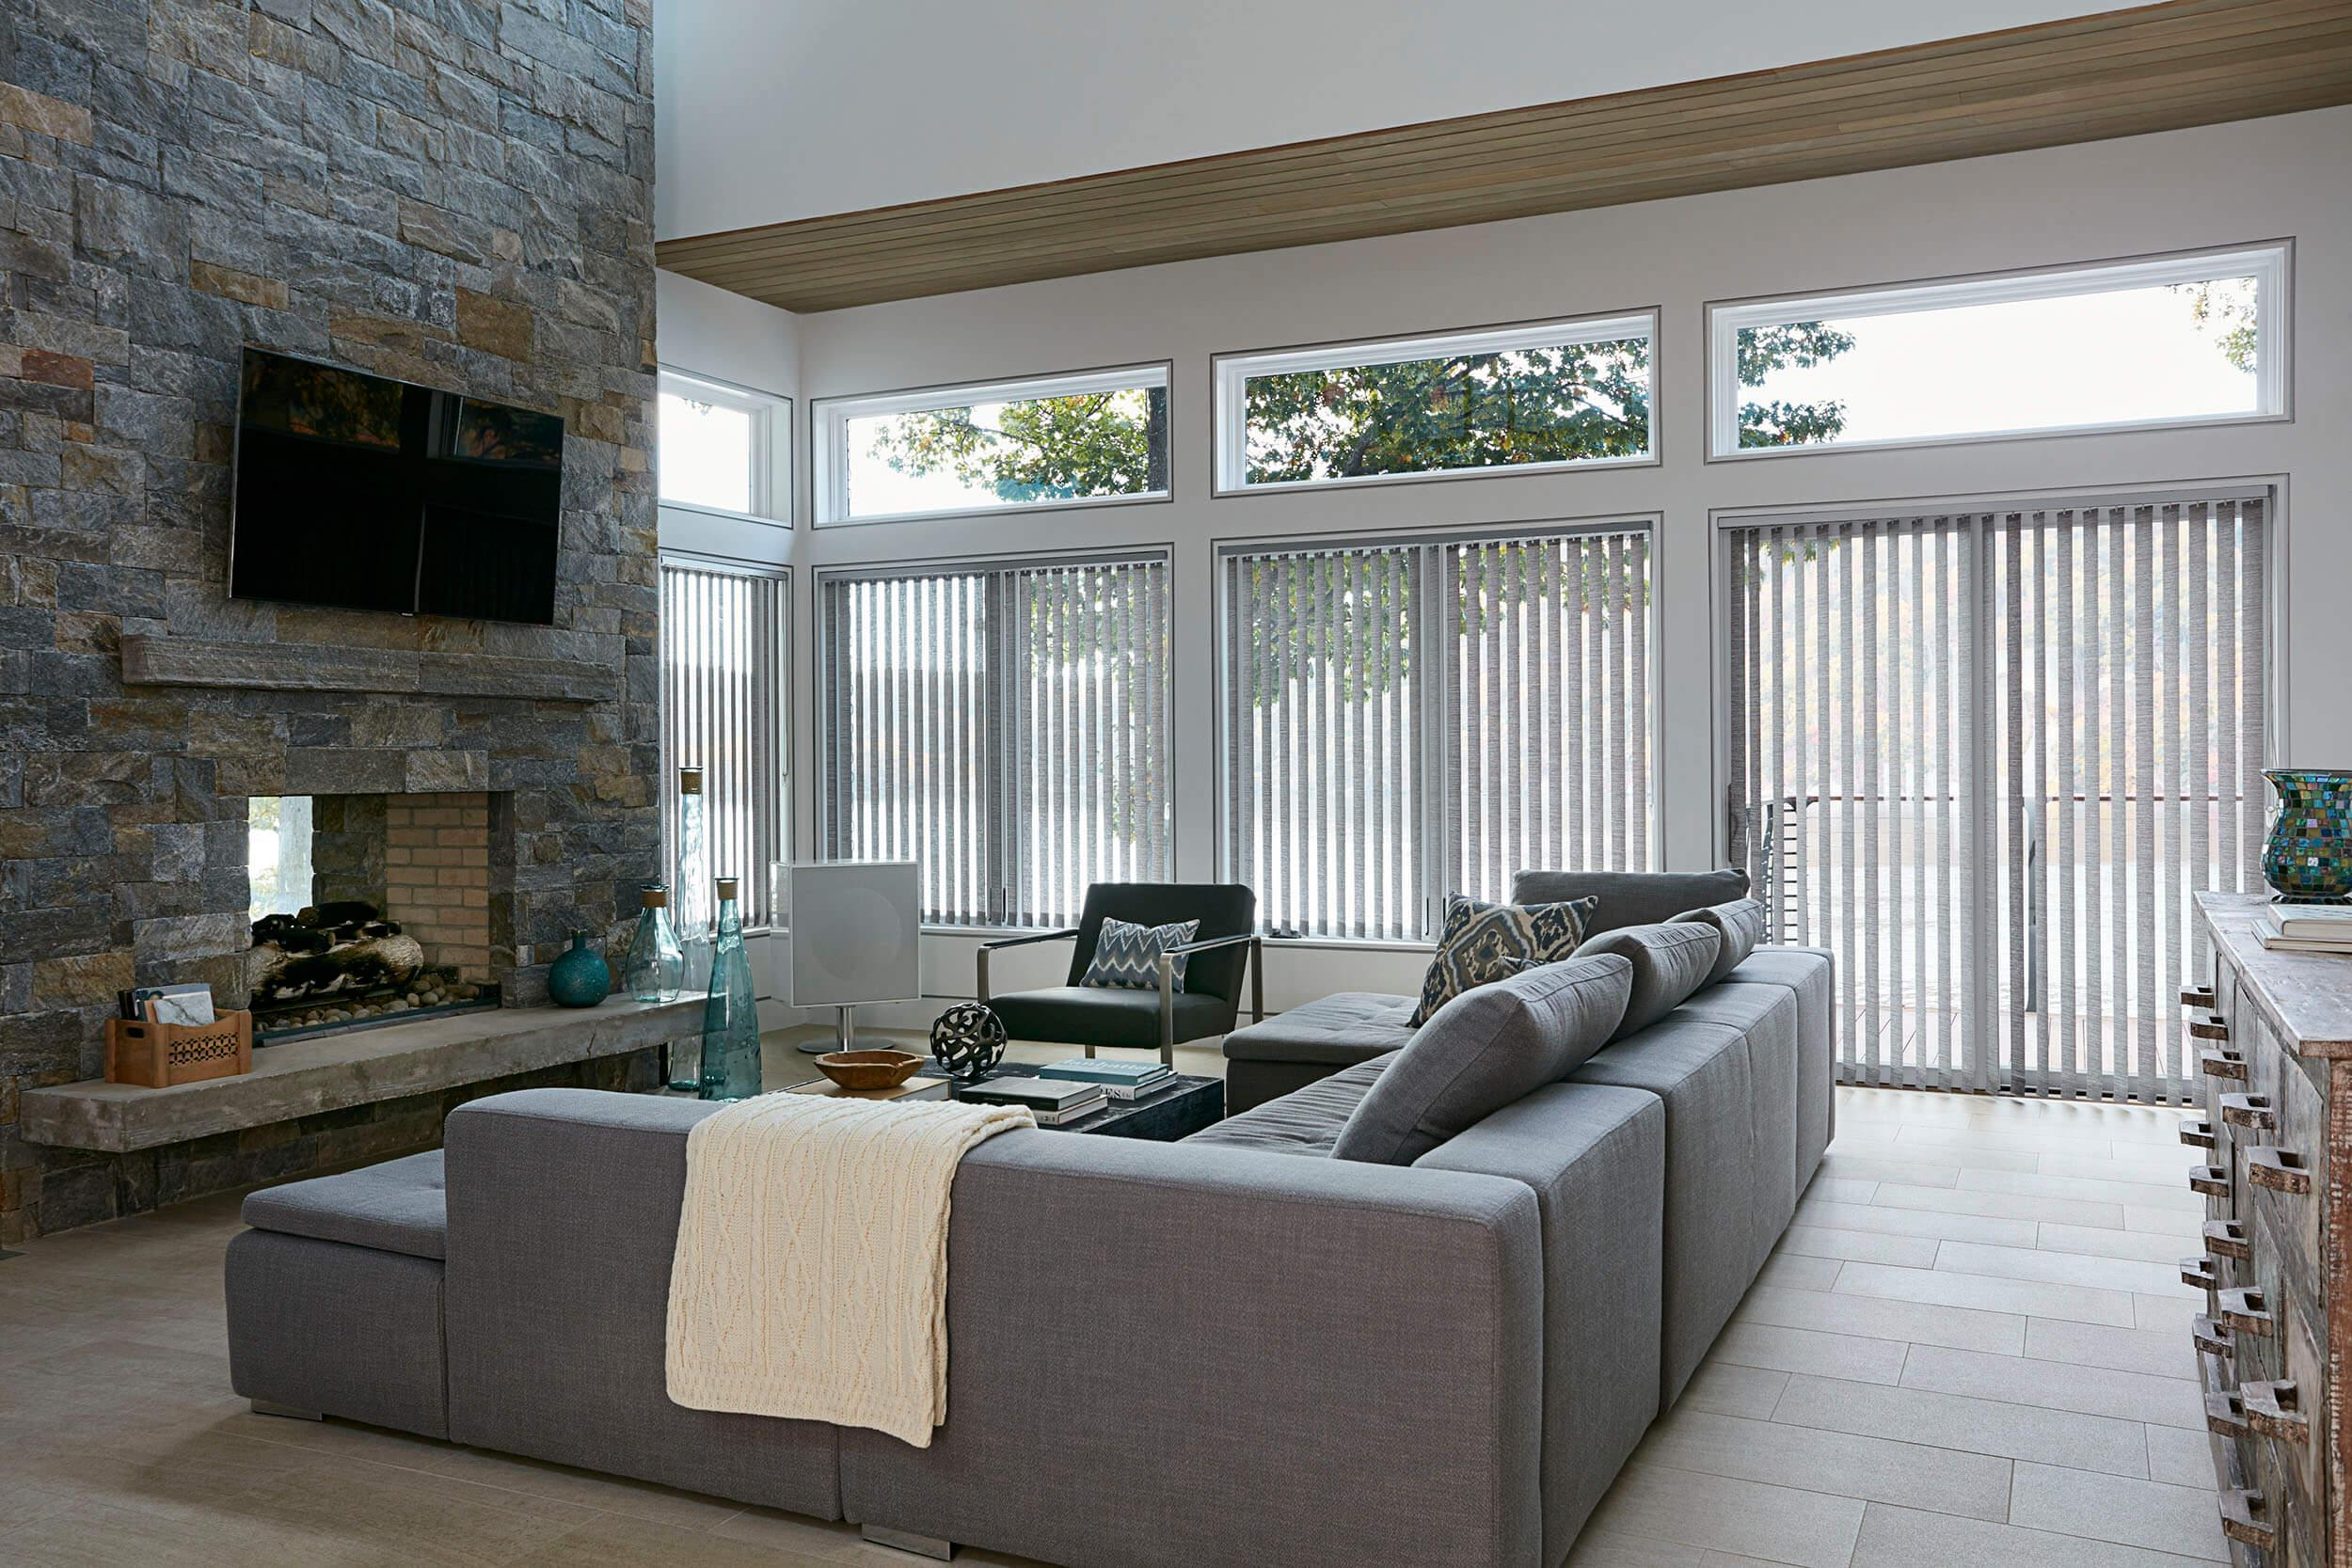 Best Choices for Patio Doors vertical blinds